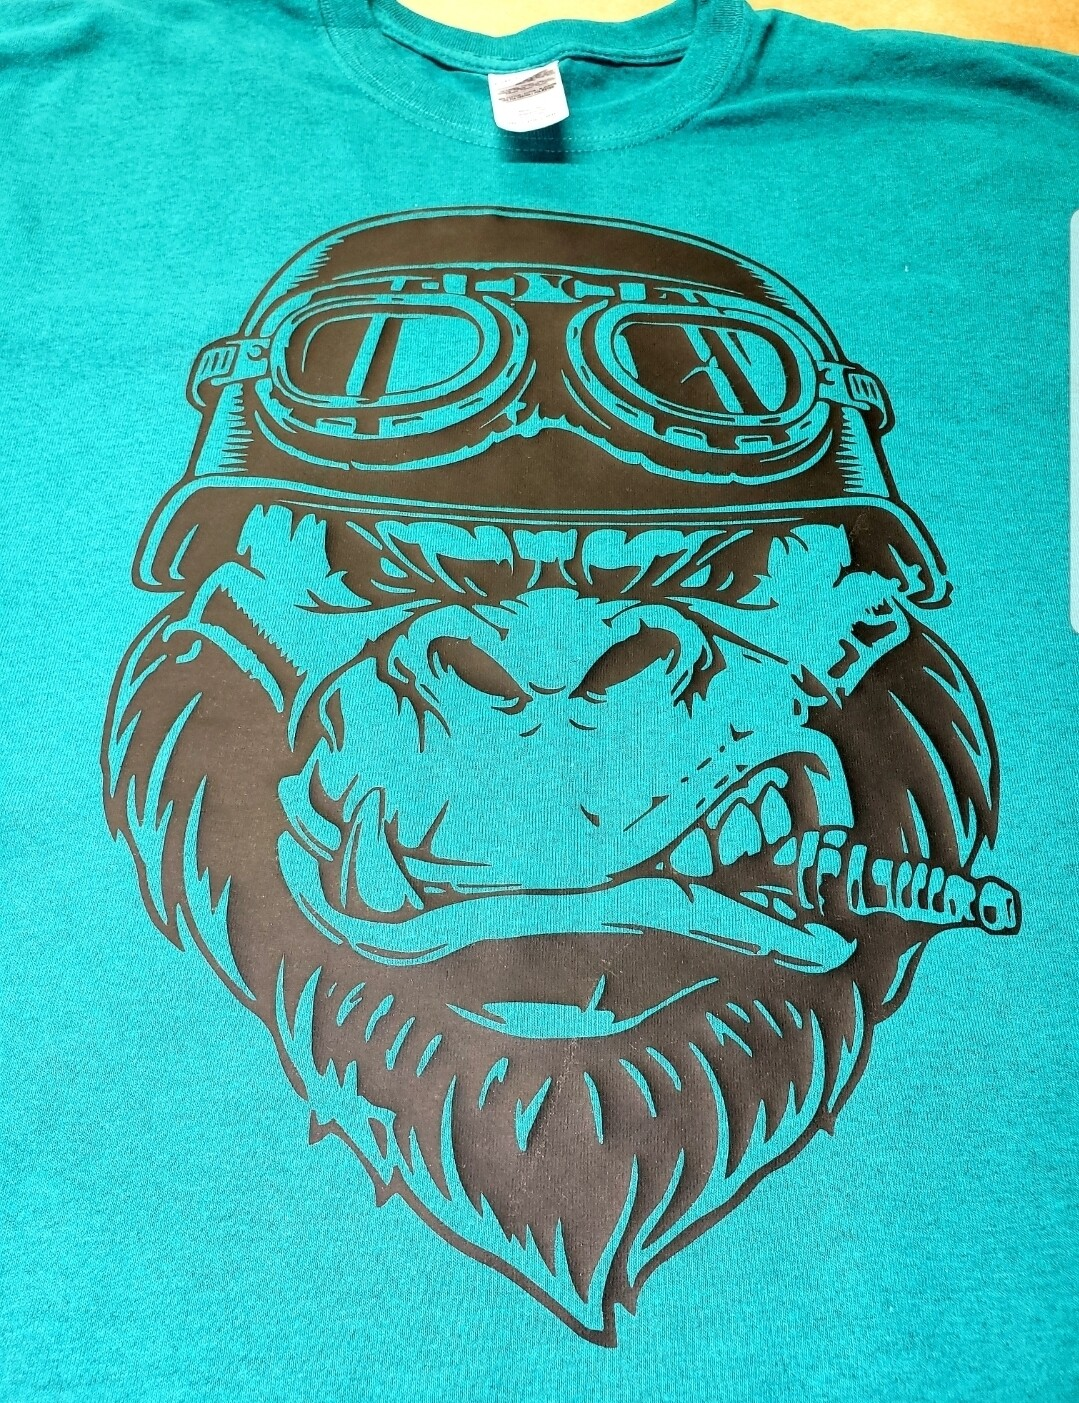 Gorilla shirt with spark plug in mouth